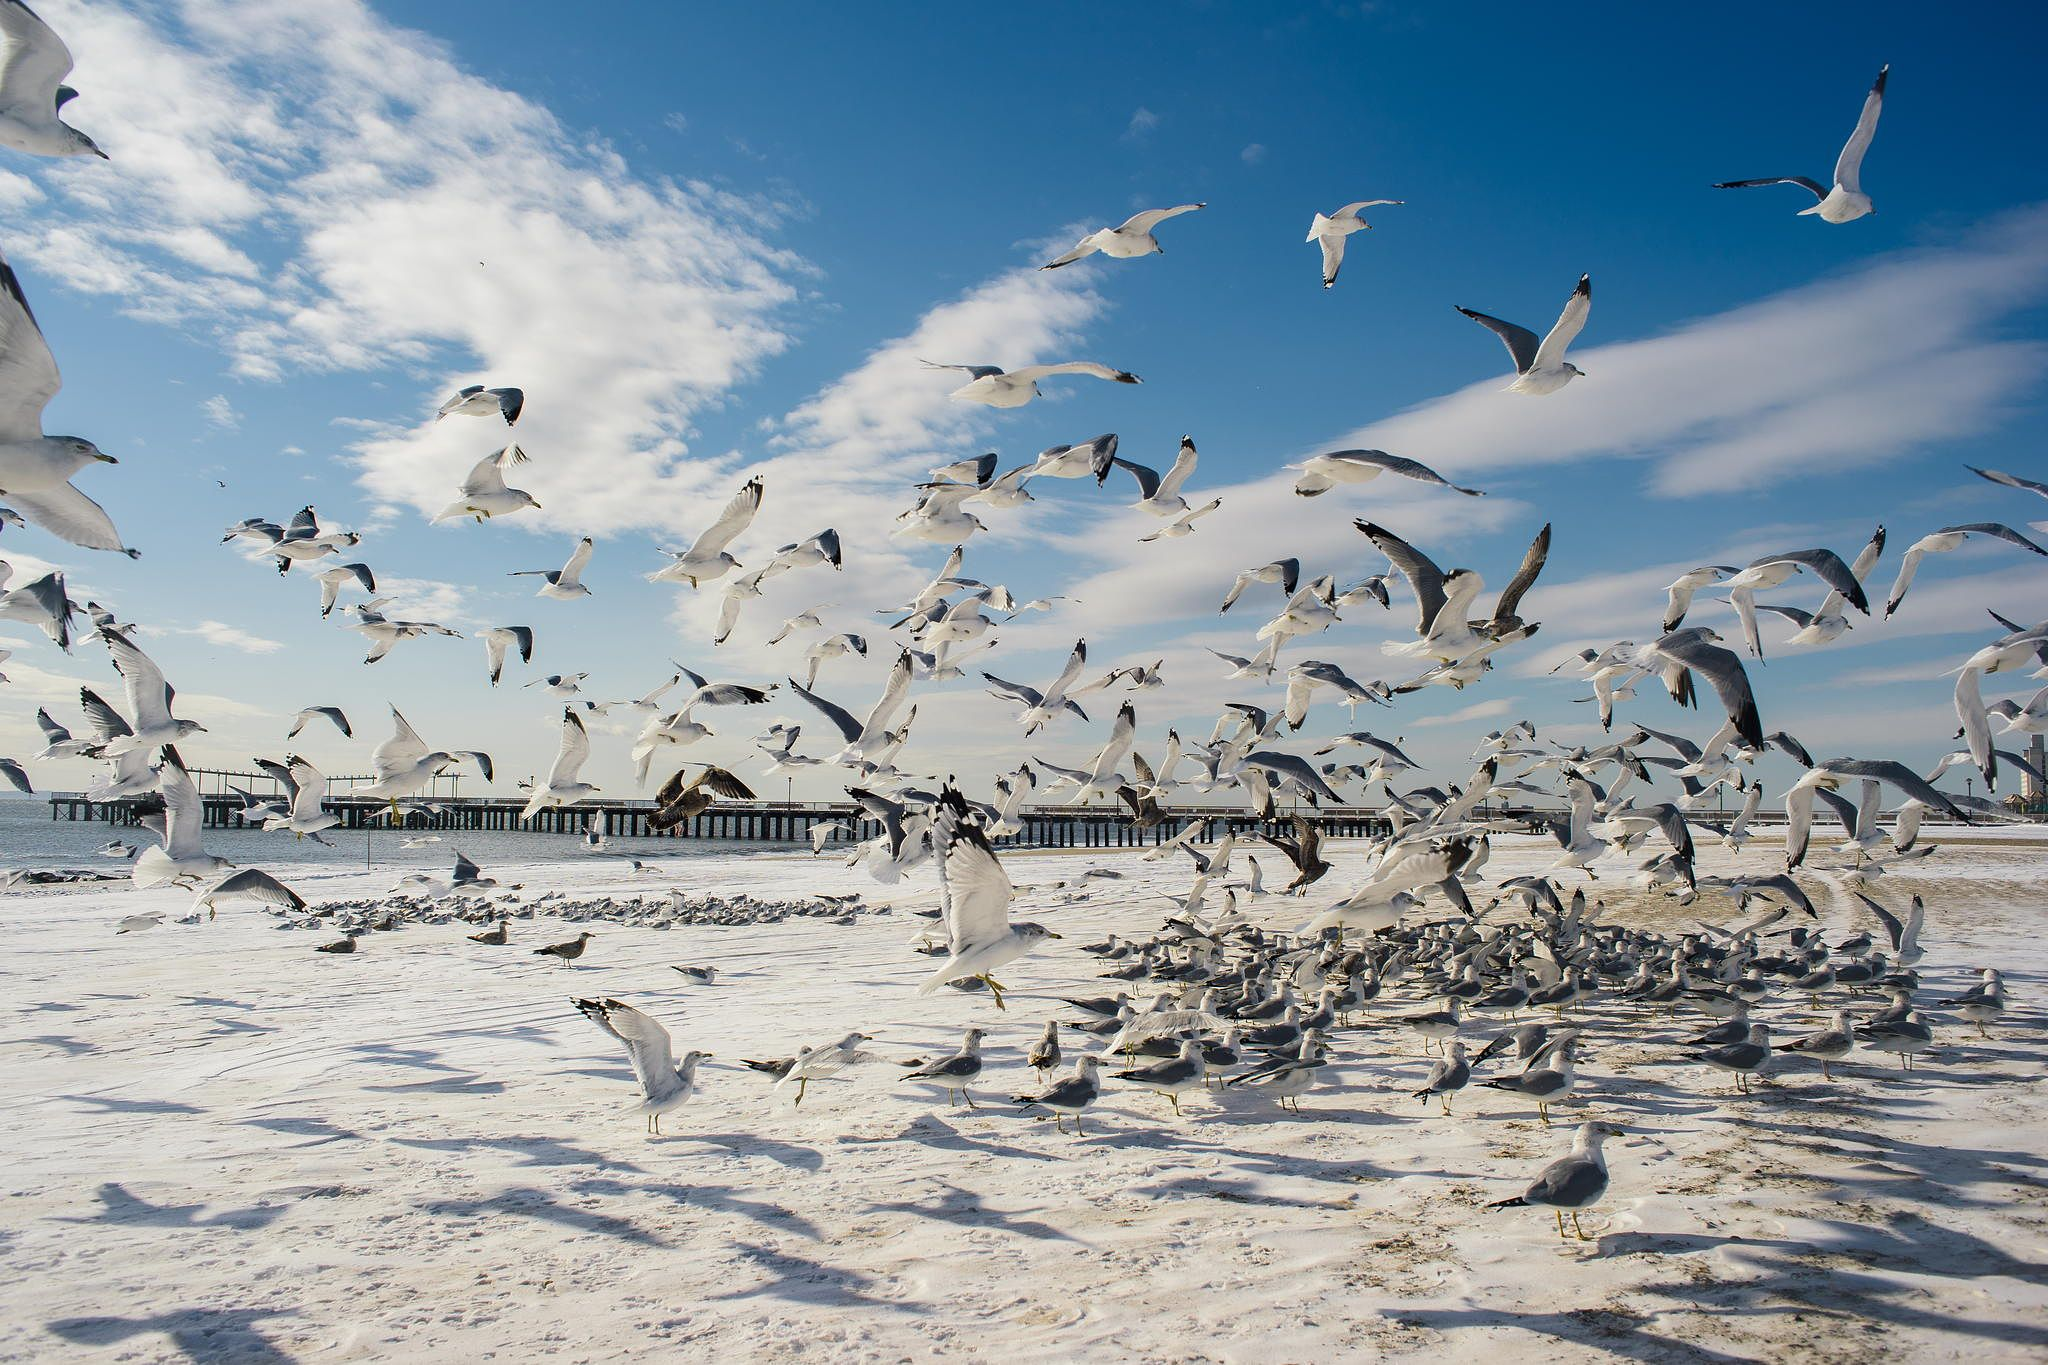 Photograph Coney Island Birds by Roman K on 500px